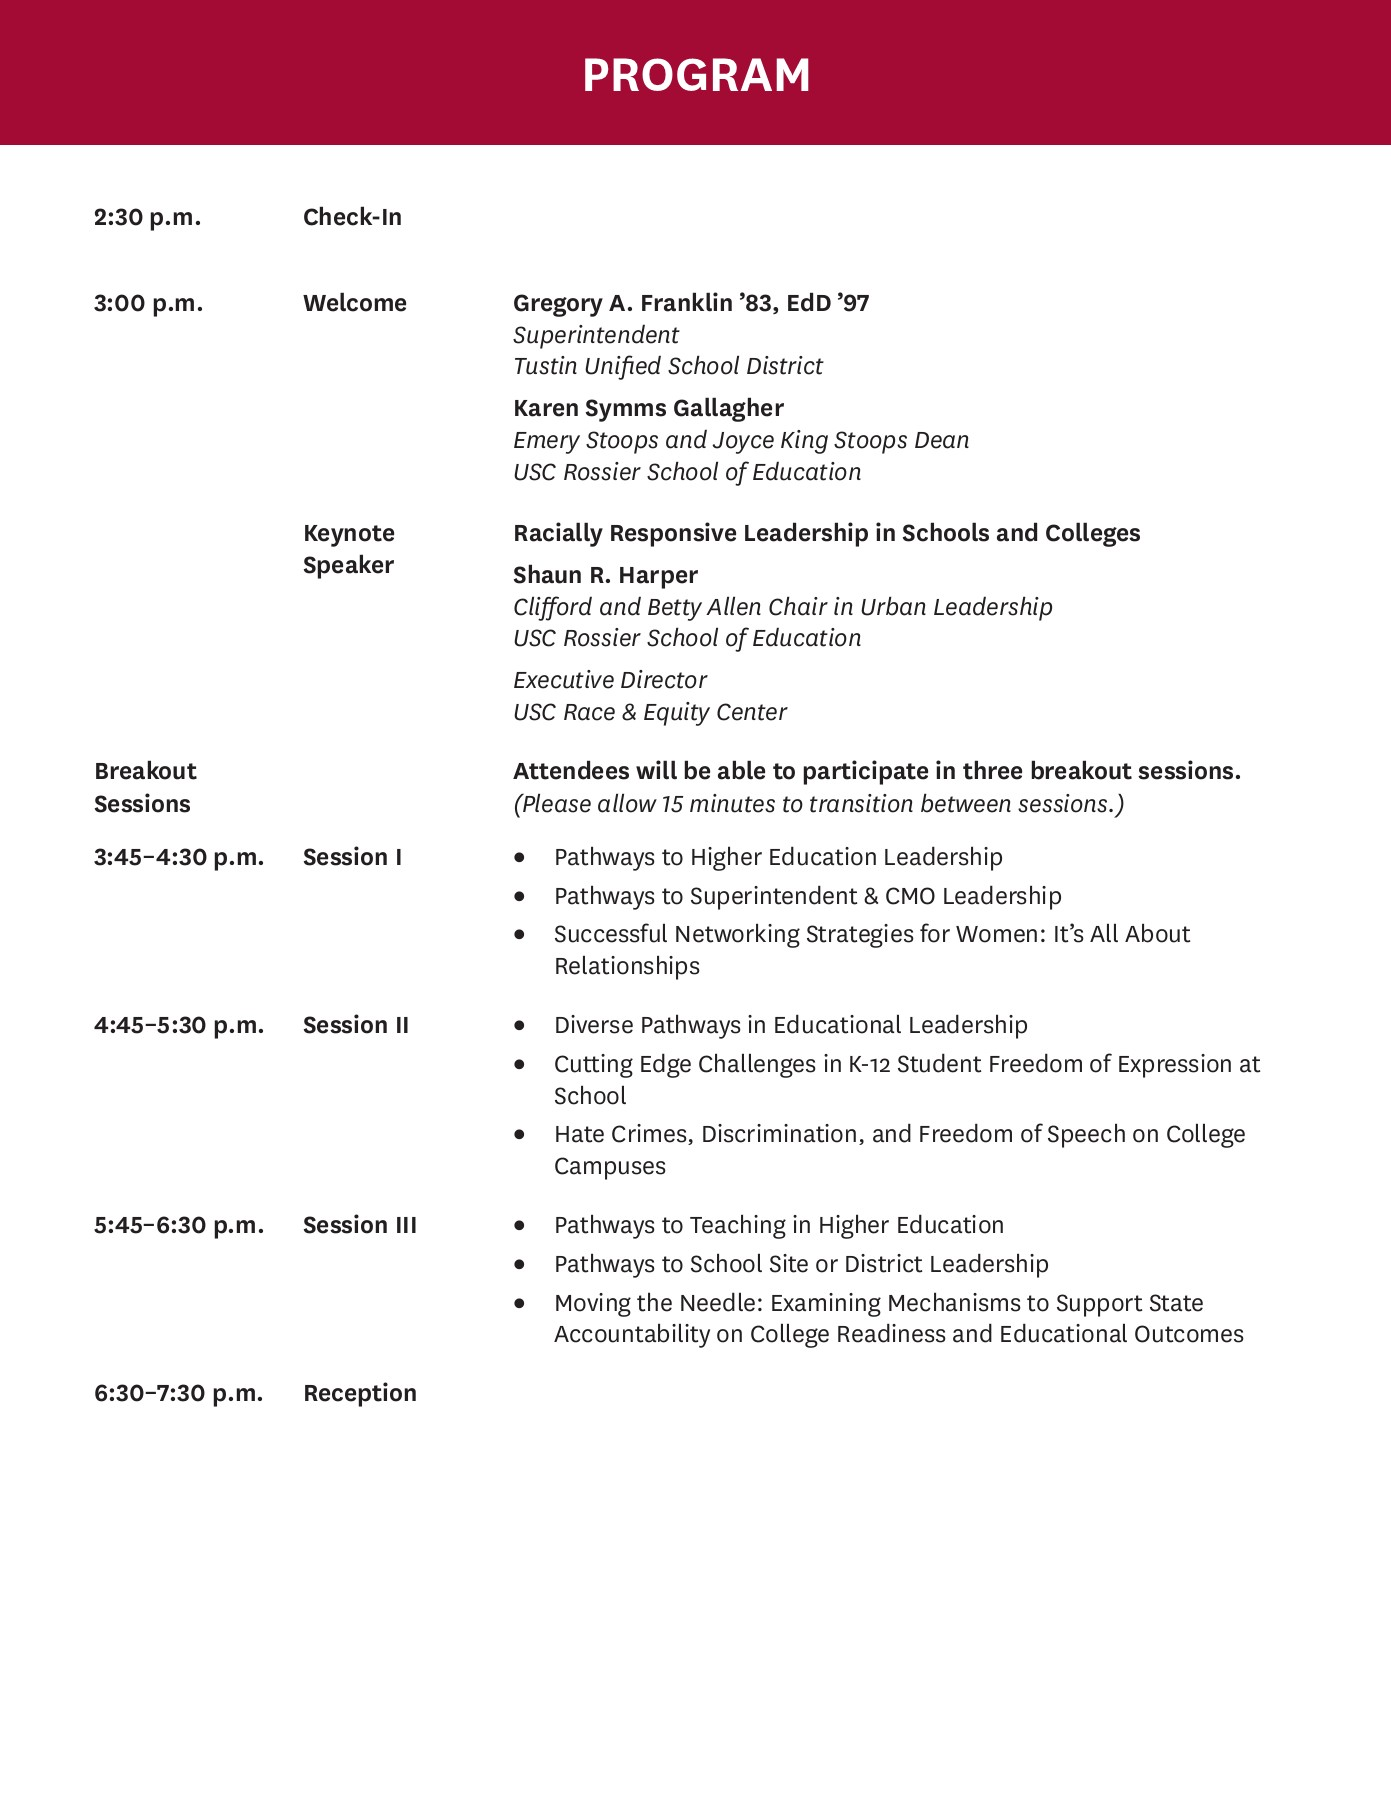 2017 Leadership Conf Program 071017 DRAFT Pages 1 - 20 - Text